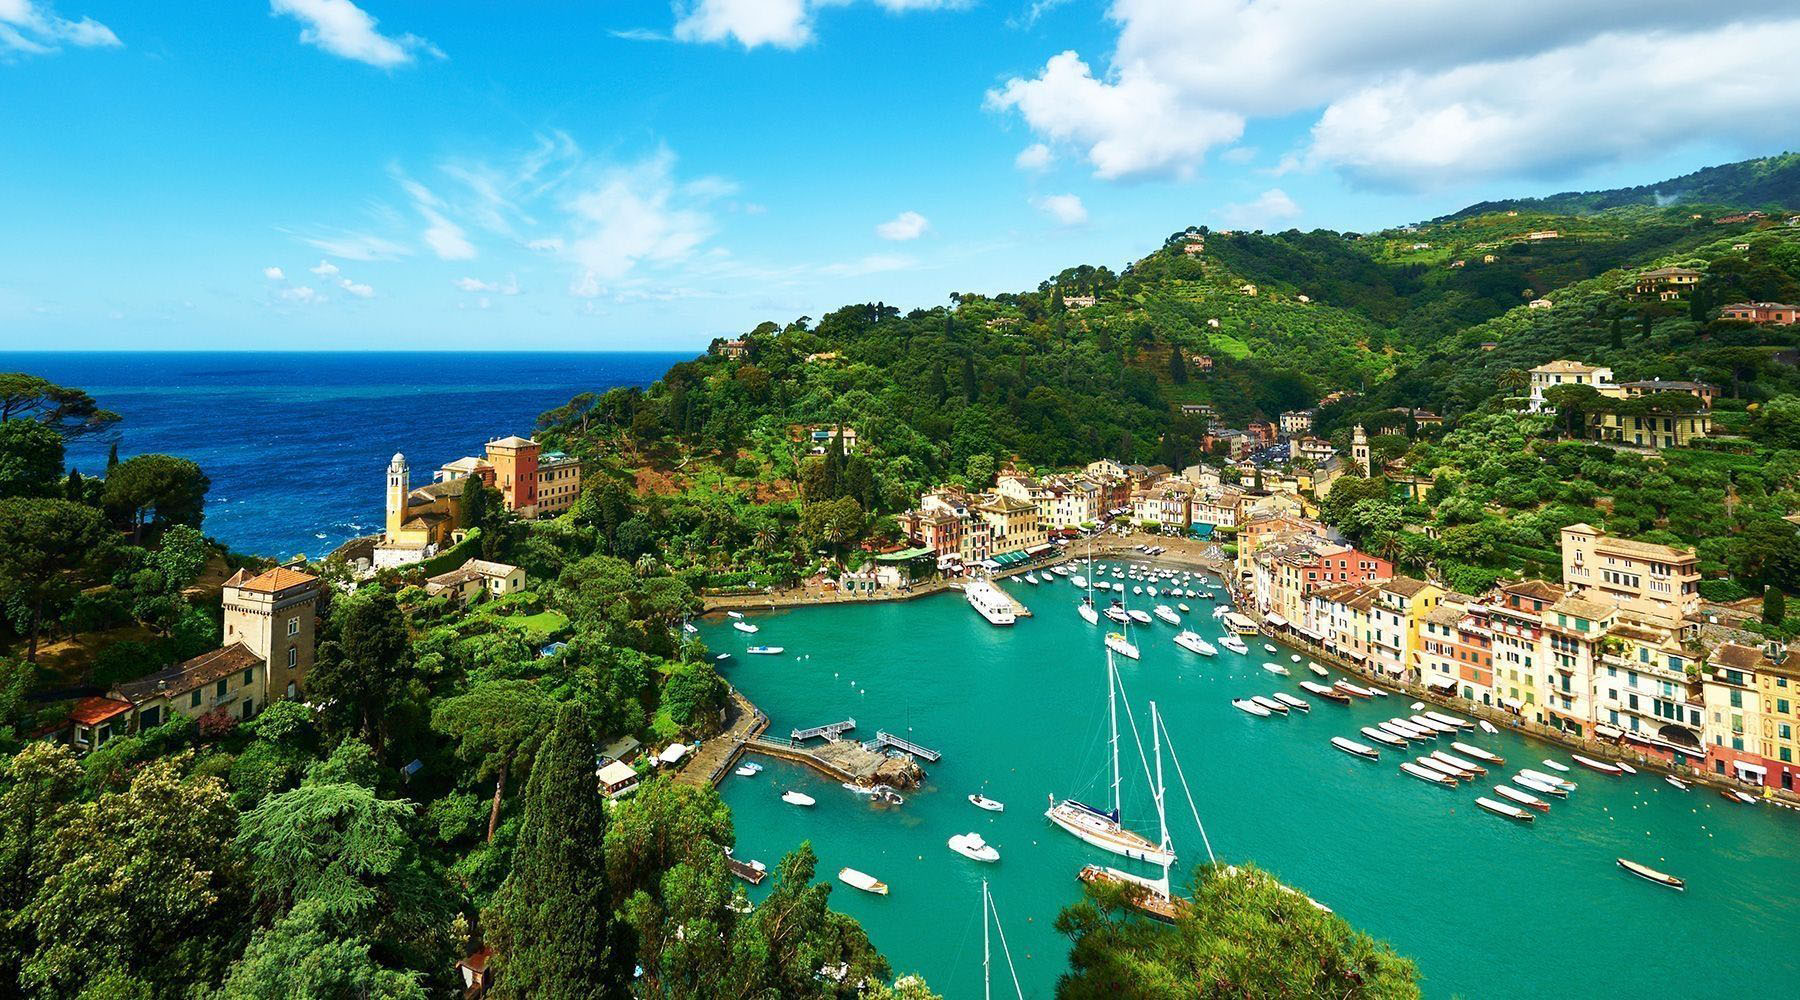 Luxury Voyages to Portofino, Italy